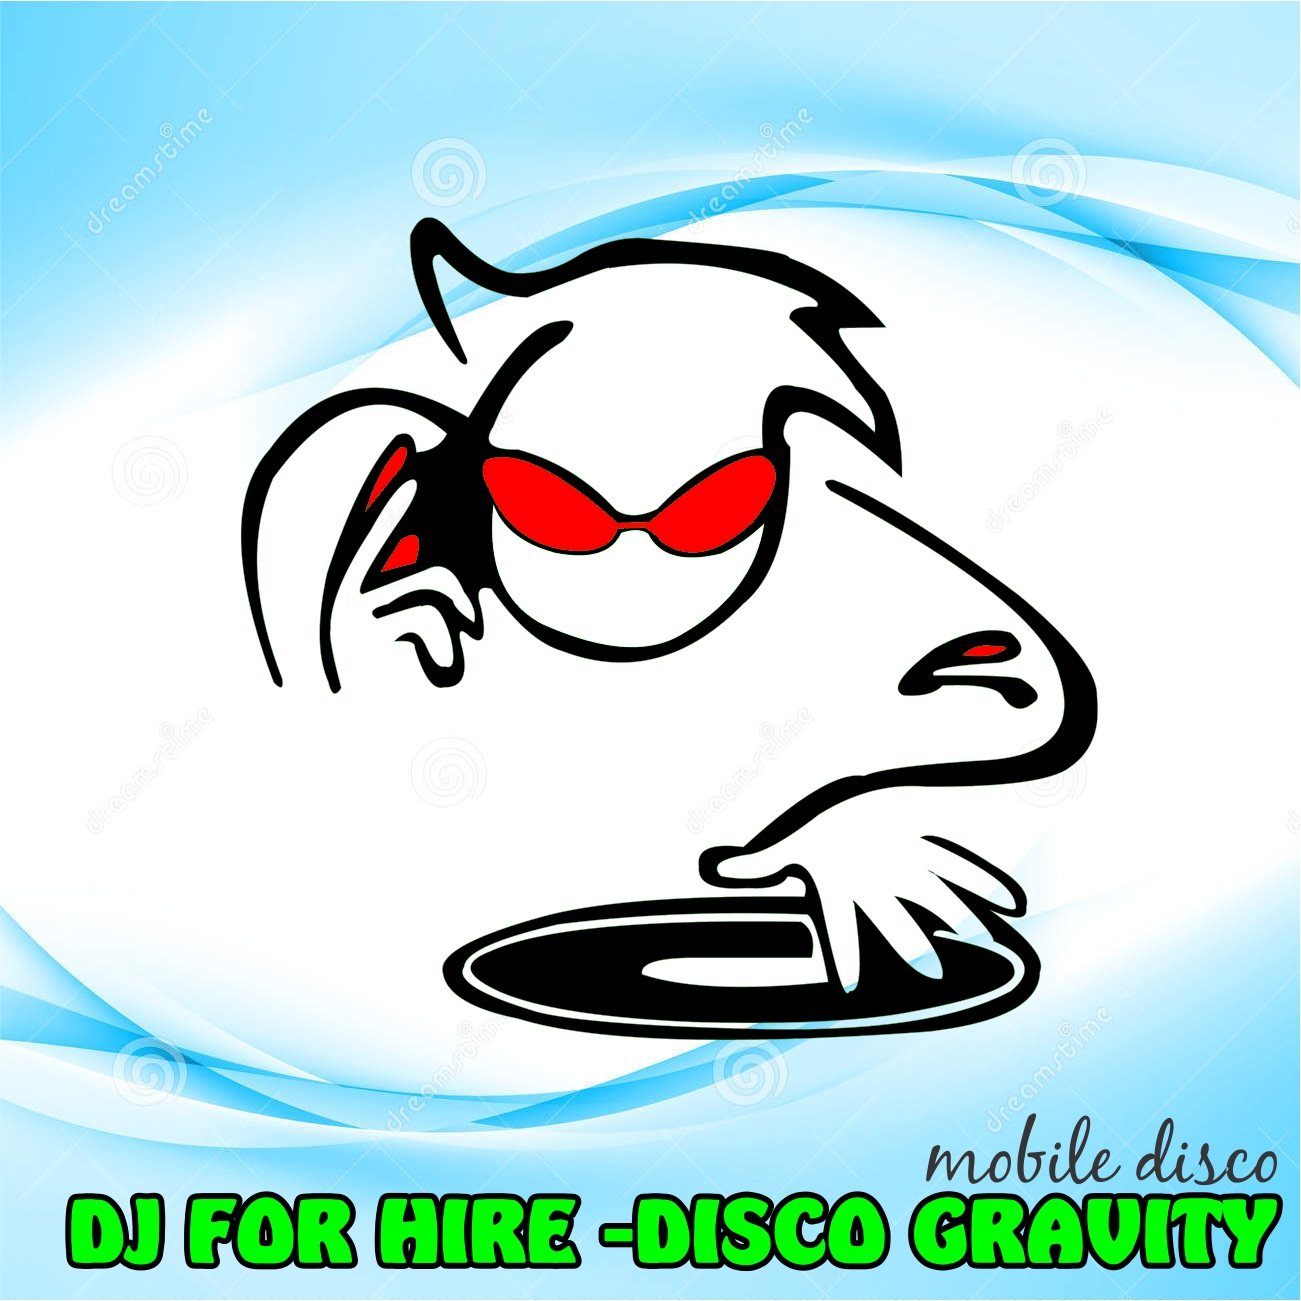 CLICK ME MOBILE DISCO GRAVITY MOBILE DJ FOR HIRE DJ RAJEN 0315072463 DURBAN SOUND DJ RAJEN DISCO GRAVITY IN DURBAN MOBILE DISCO FOR HIRE MOBILE DJ IN DURBAN FOR HIRE PROFESSIONAL DJ FOR HIRE HOTTEST DJ IN DURBAN DJ RAJEN 0837252146  DISCO FOR HIRE 0315072736